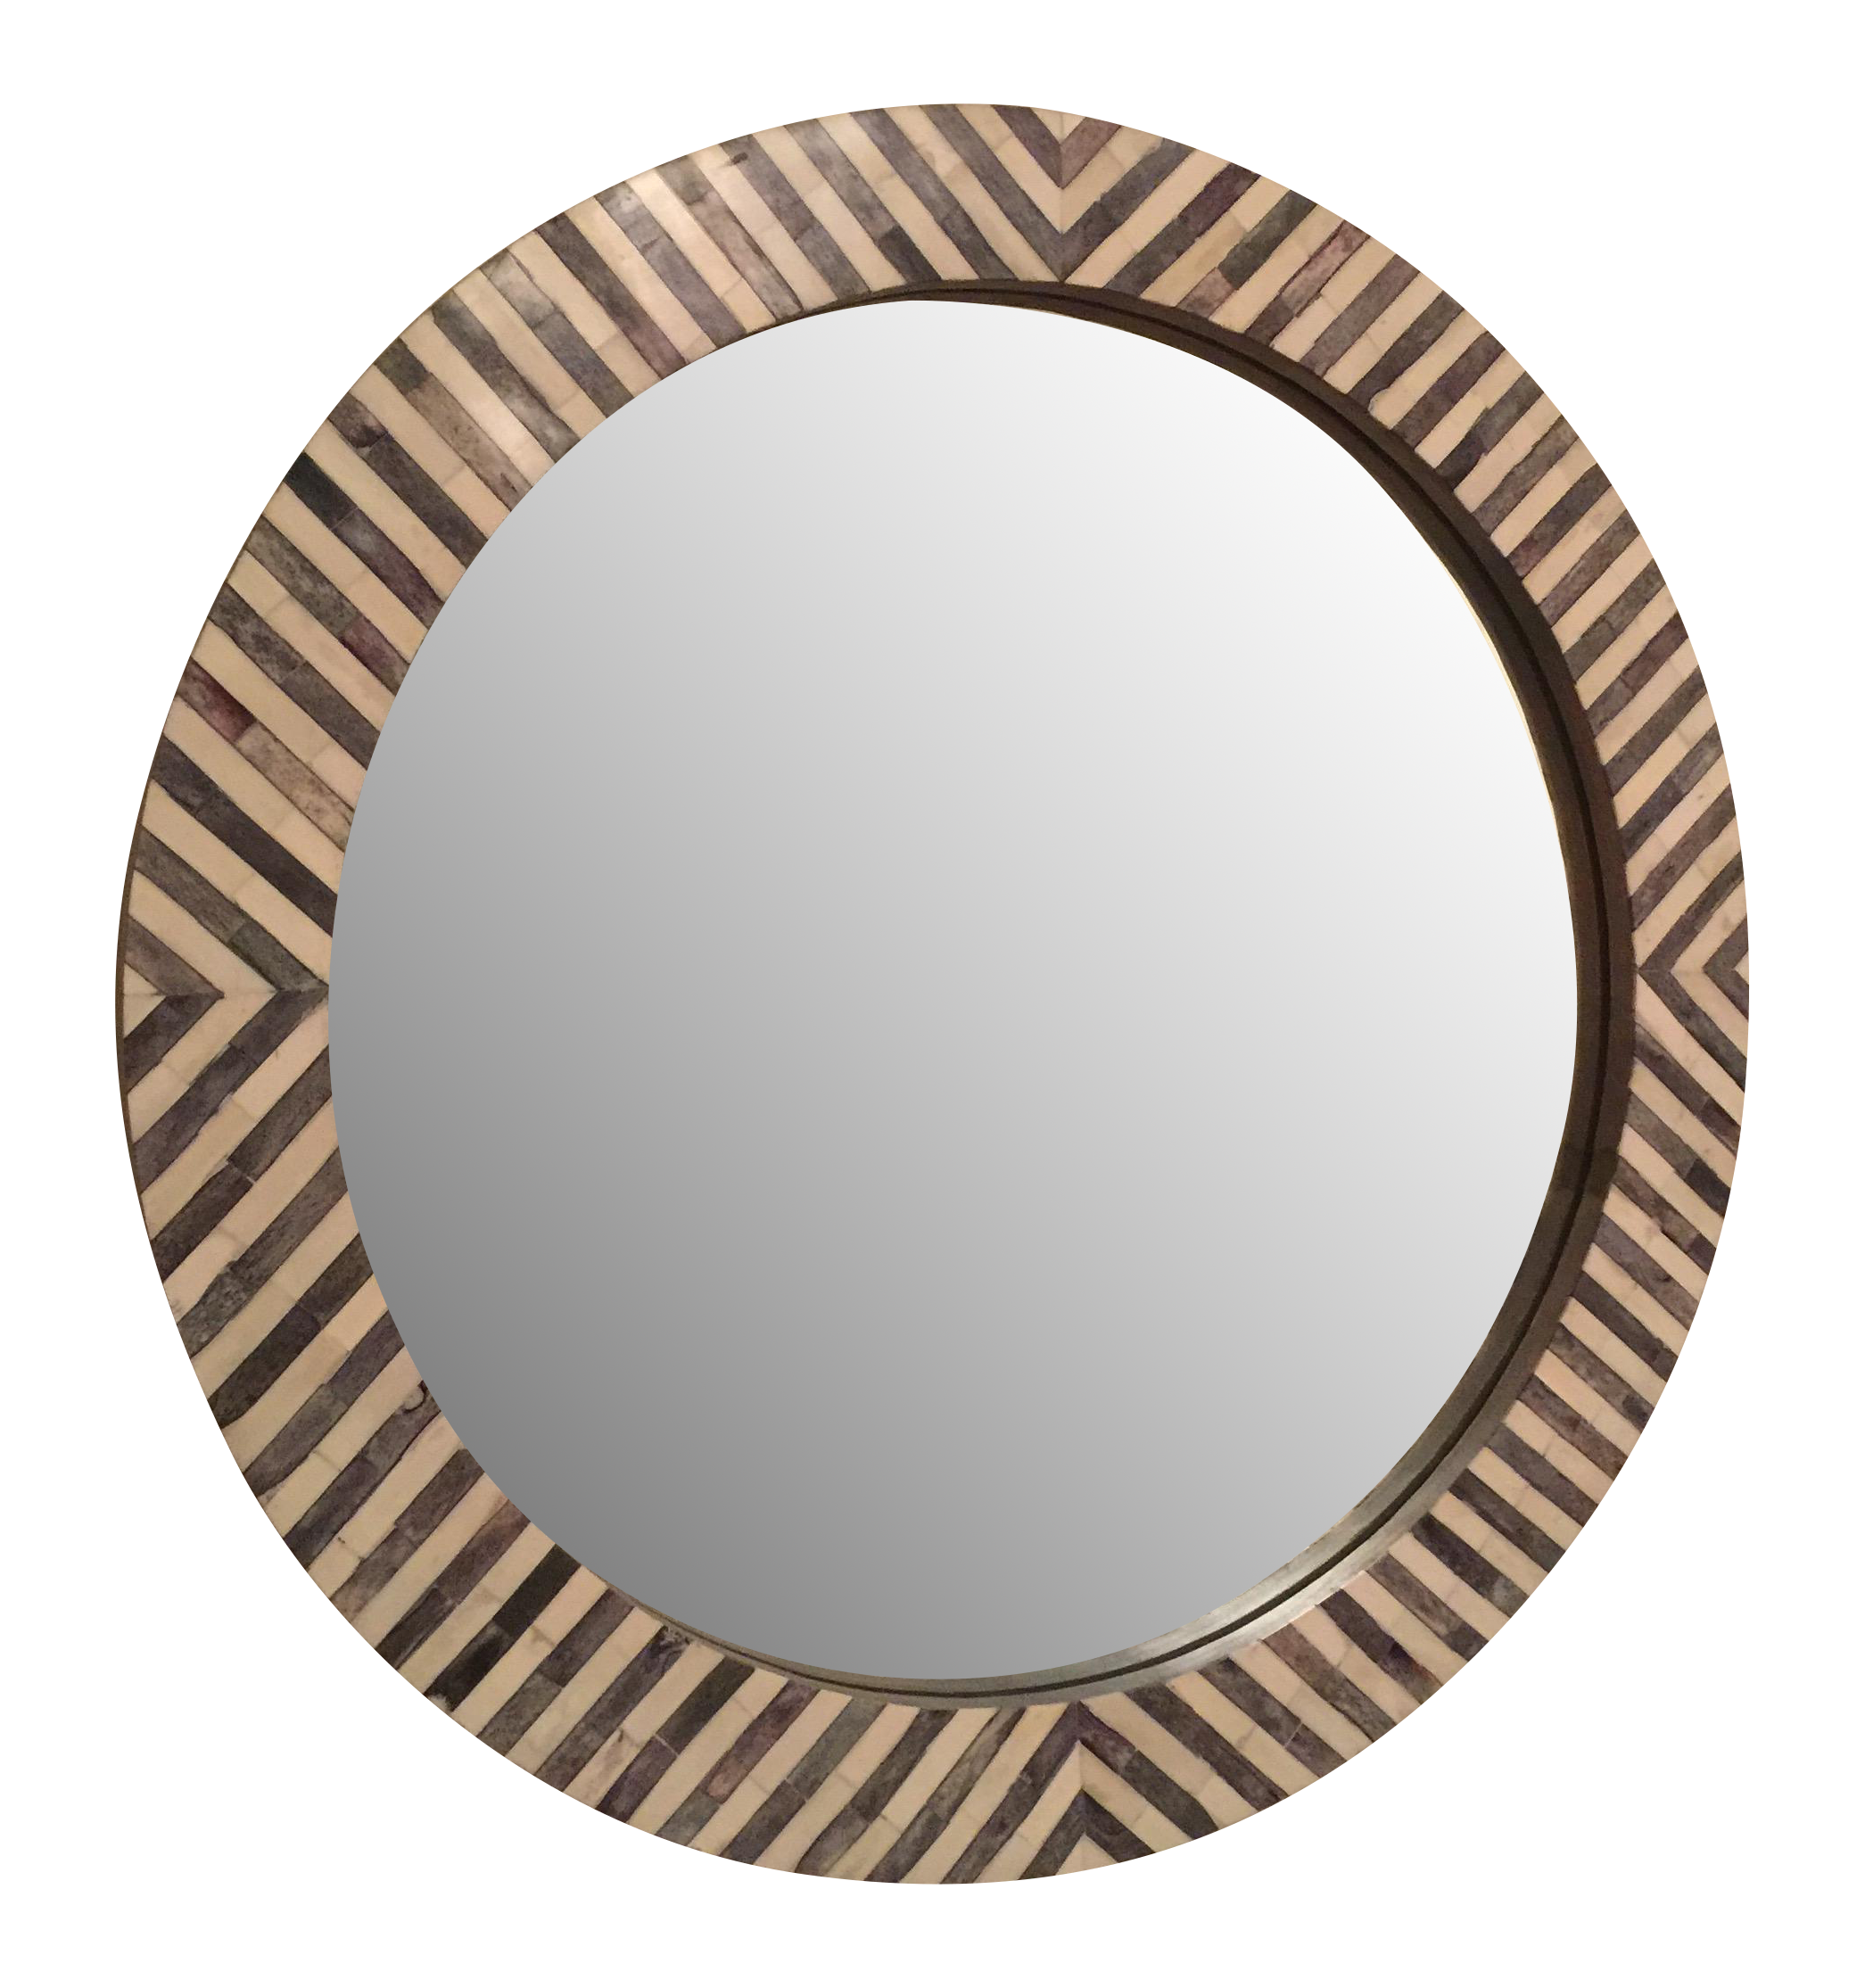 West elm round herringbone parsons wall mirror herringbone west elm round herringbone parsons wall mirror amipublicfo Image collections